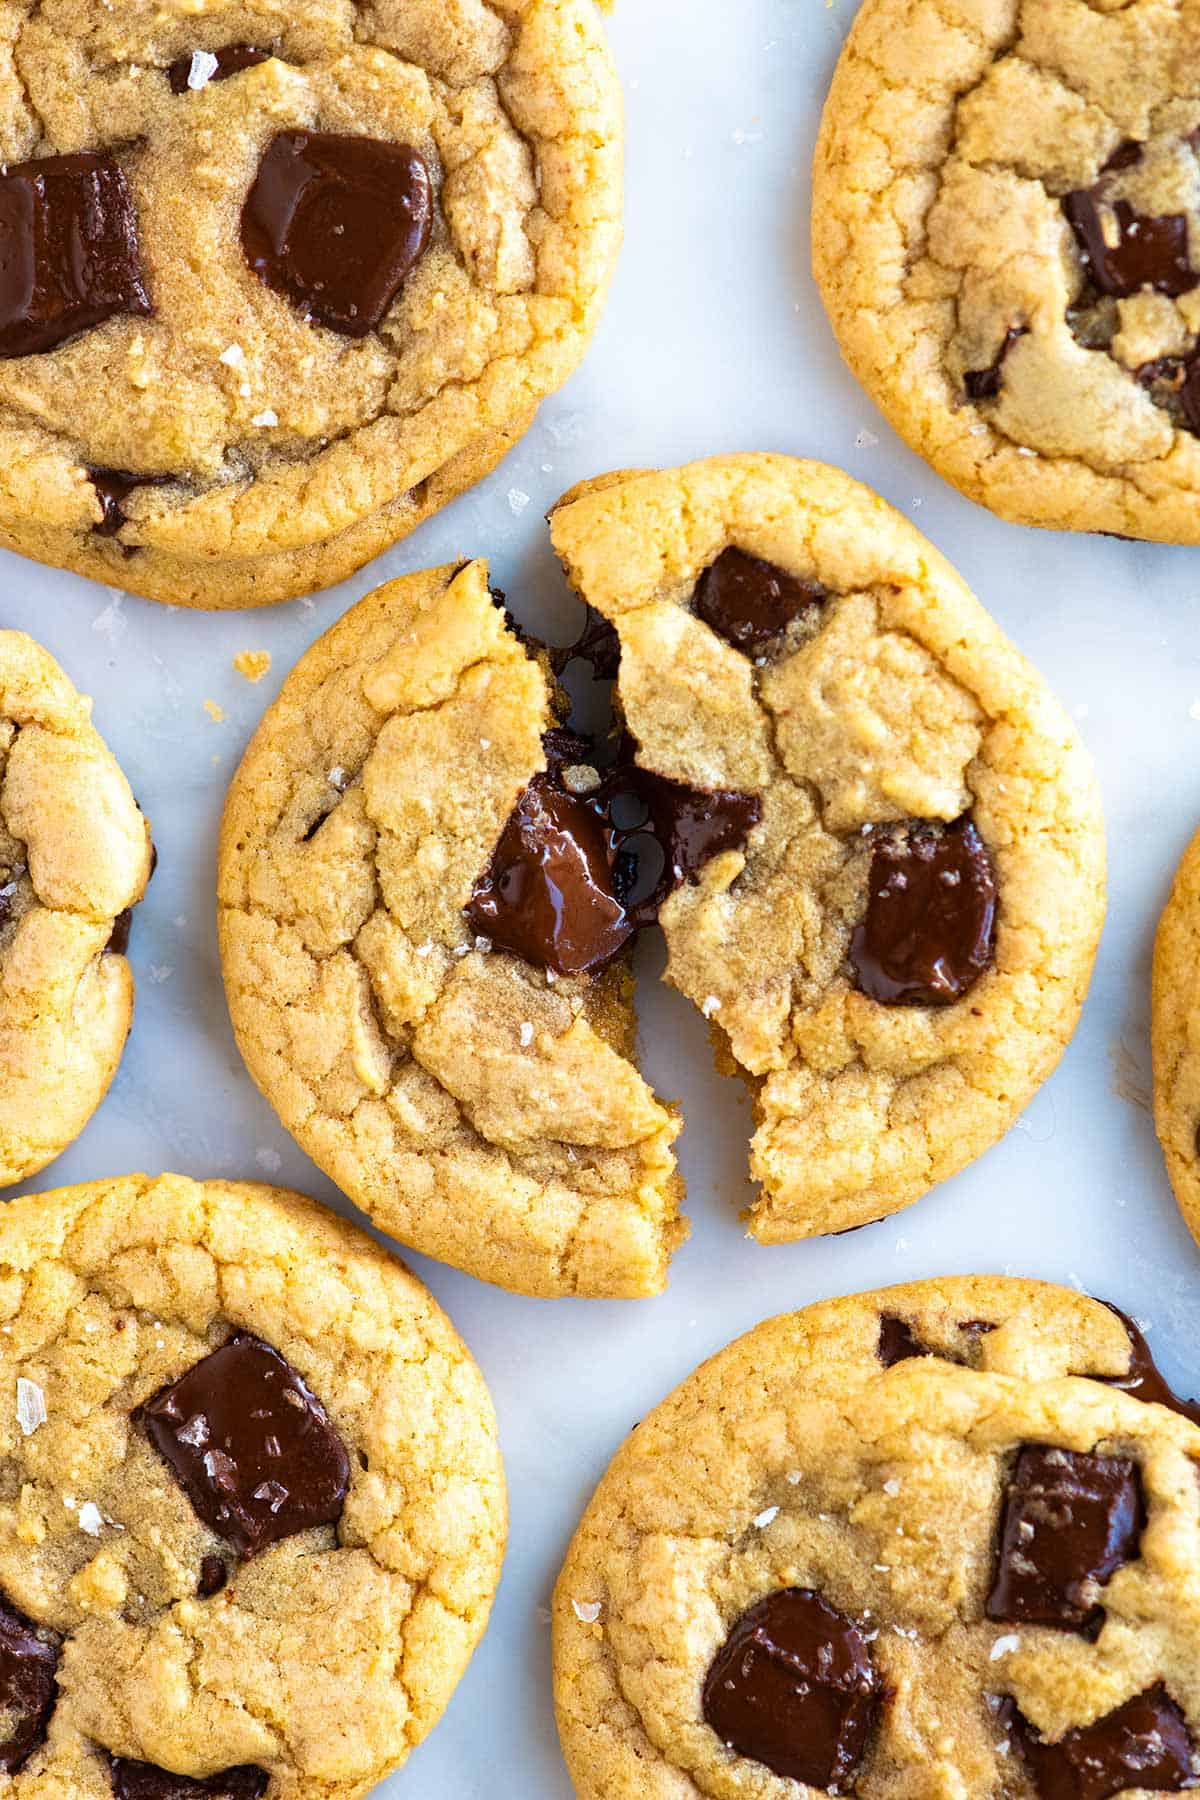 Melted butter is the secret to making quick and easy chocolate chip cookies!